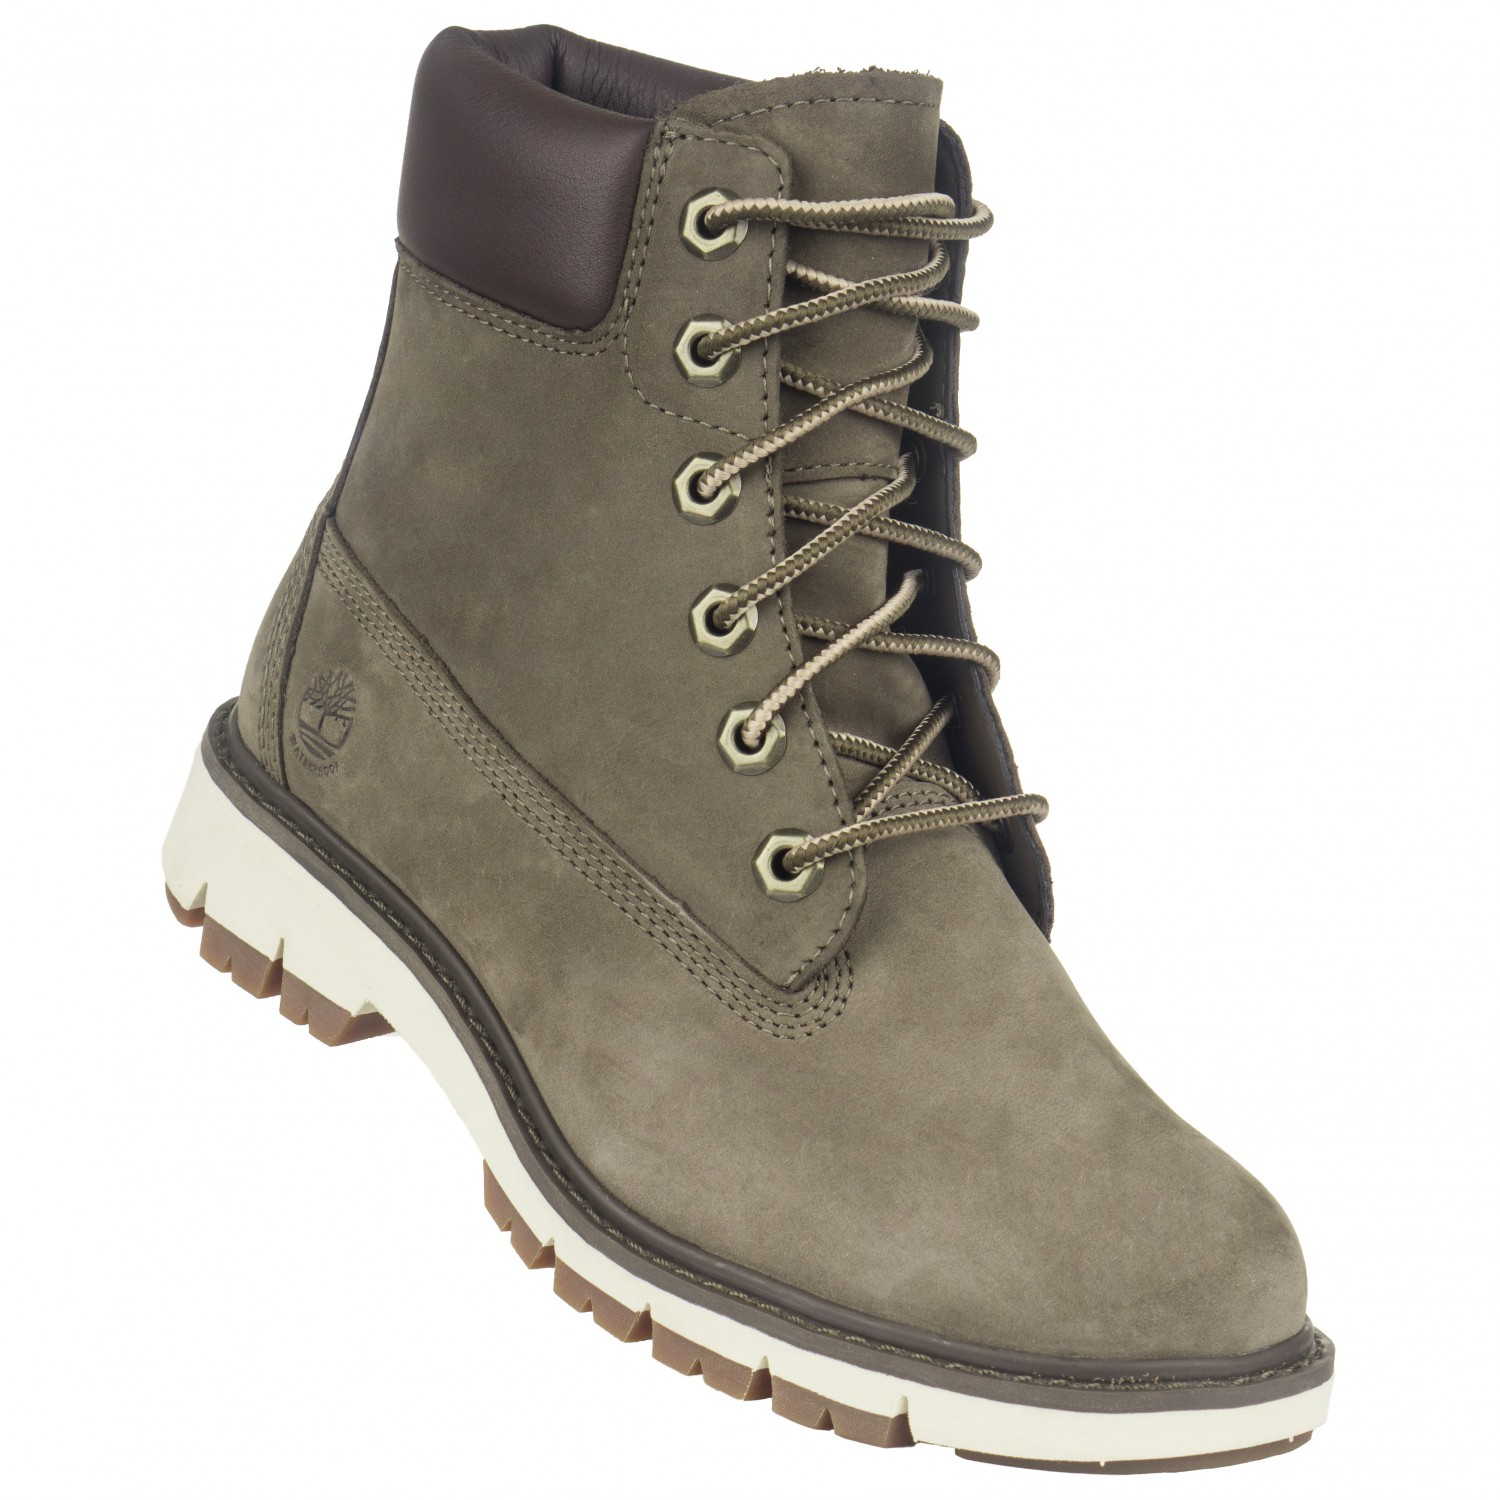 Timberland - Women s Lucia Way 6in WP Boot - Stivali per ... ded51b44ec1